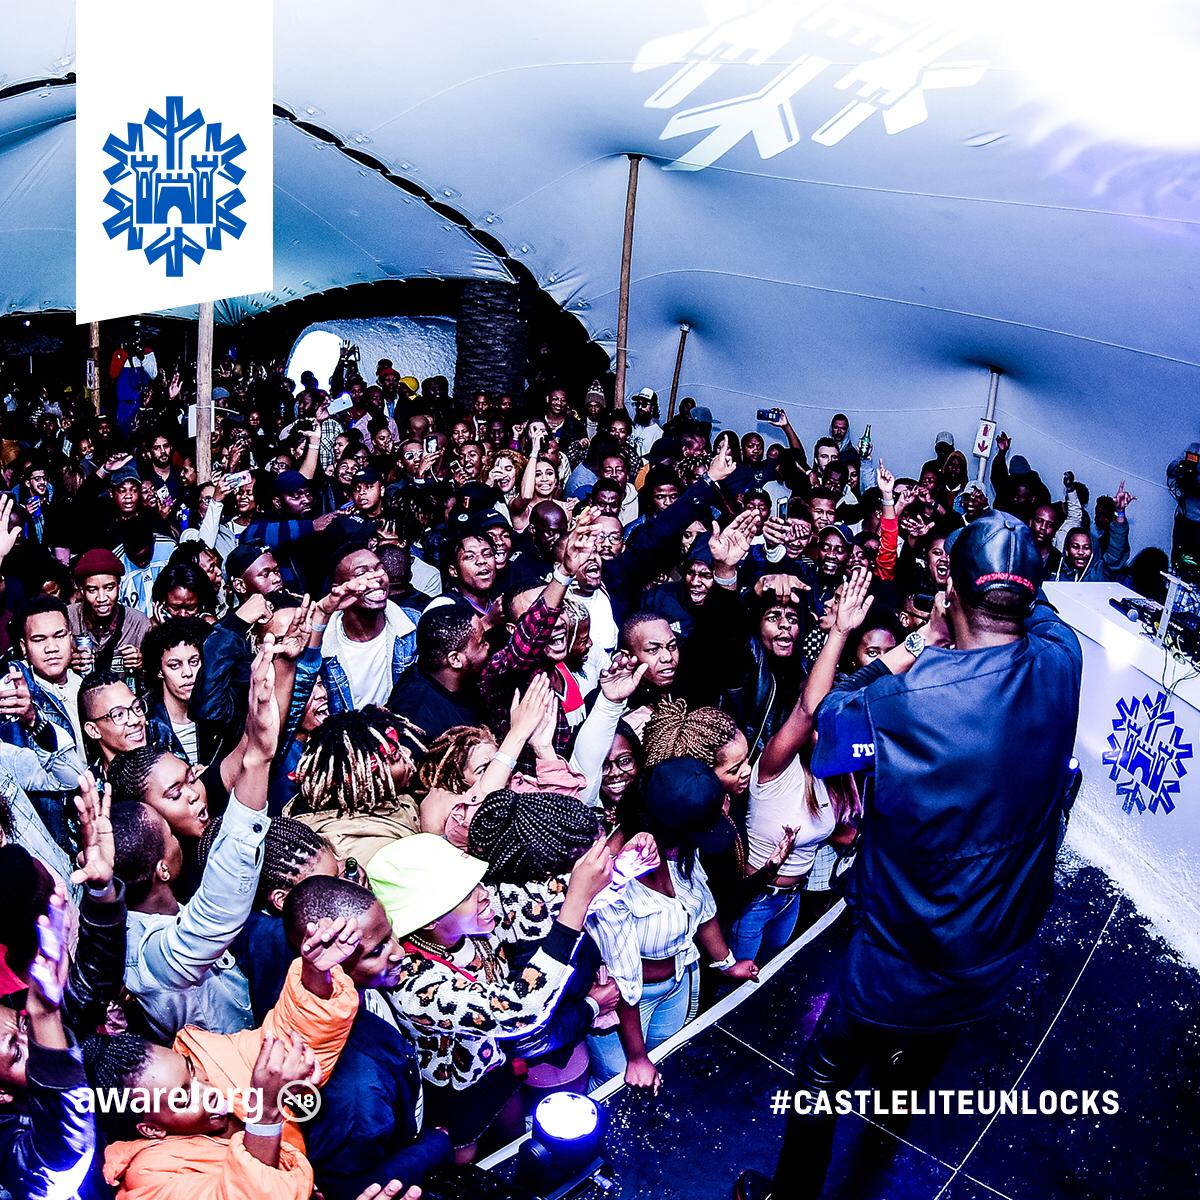 CASTLE LITE UNLOCKS CAPE TOWN! PHOTO 2019 05 13 10 15 04